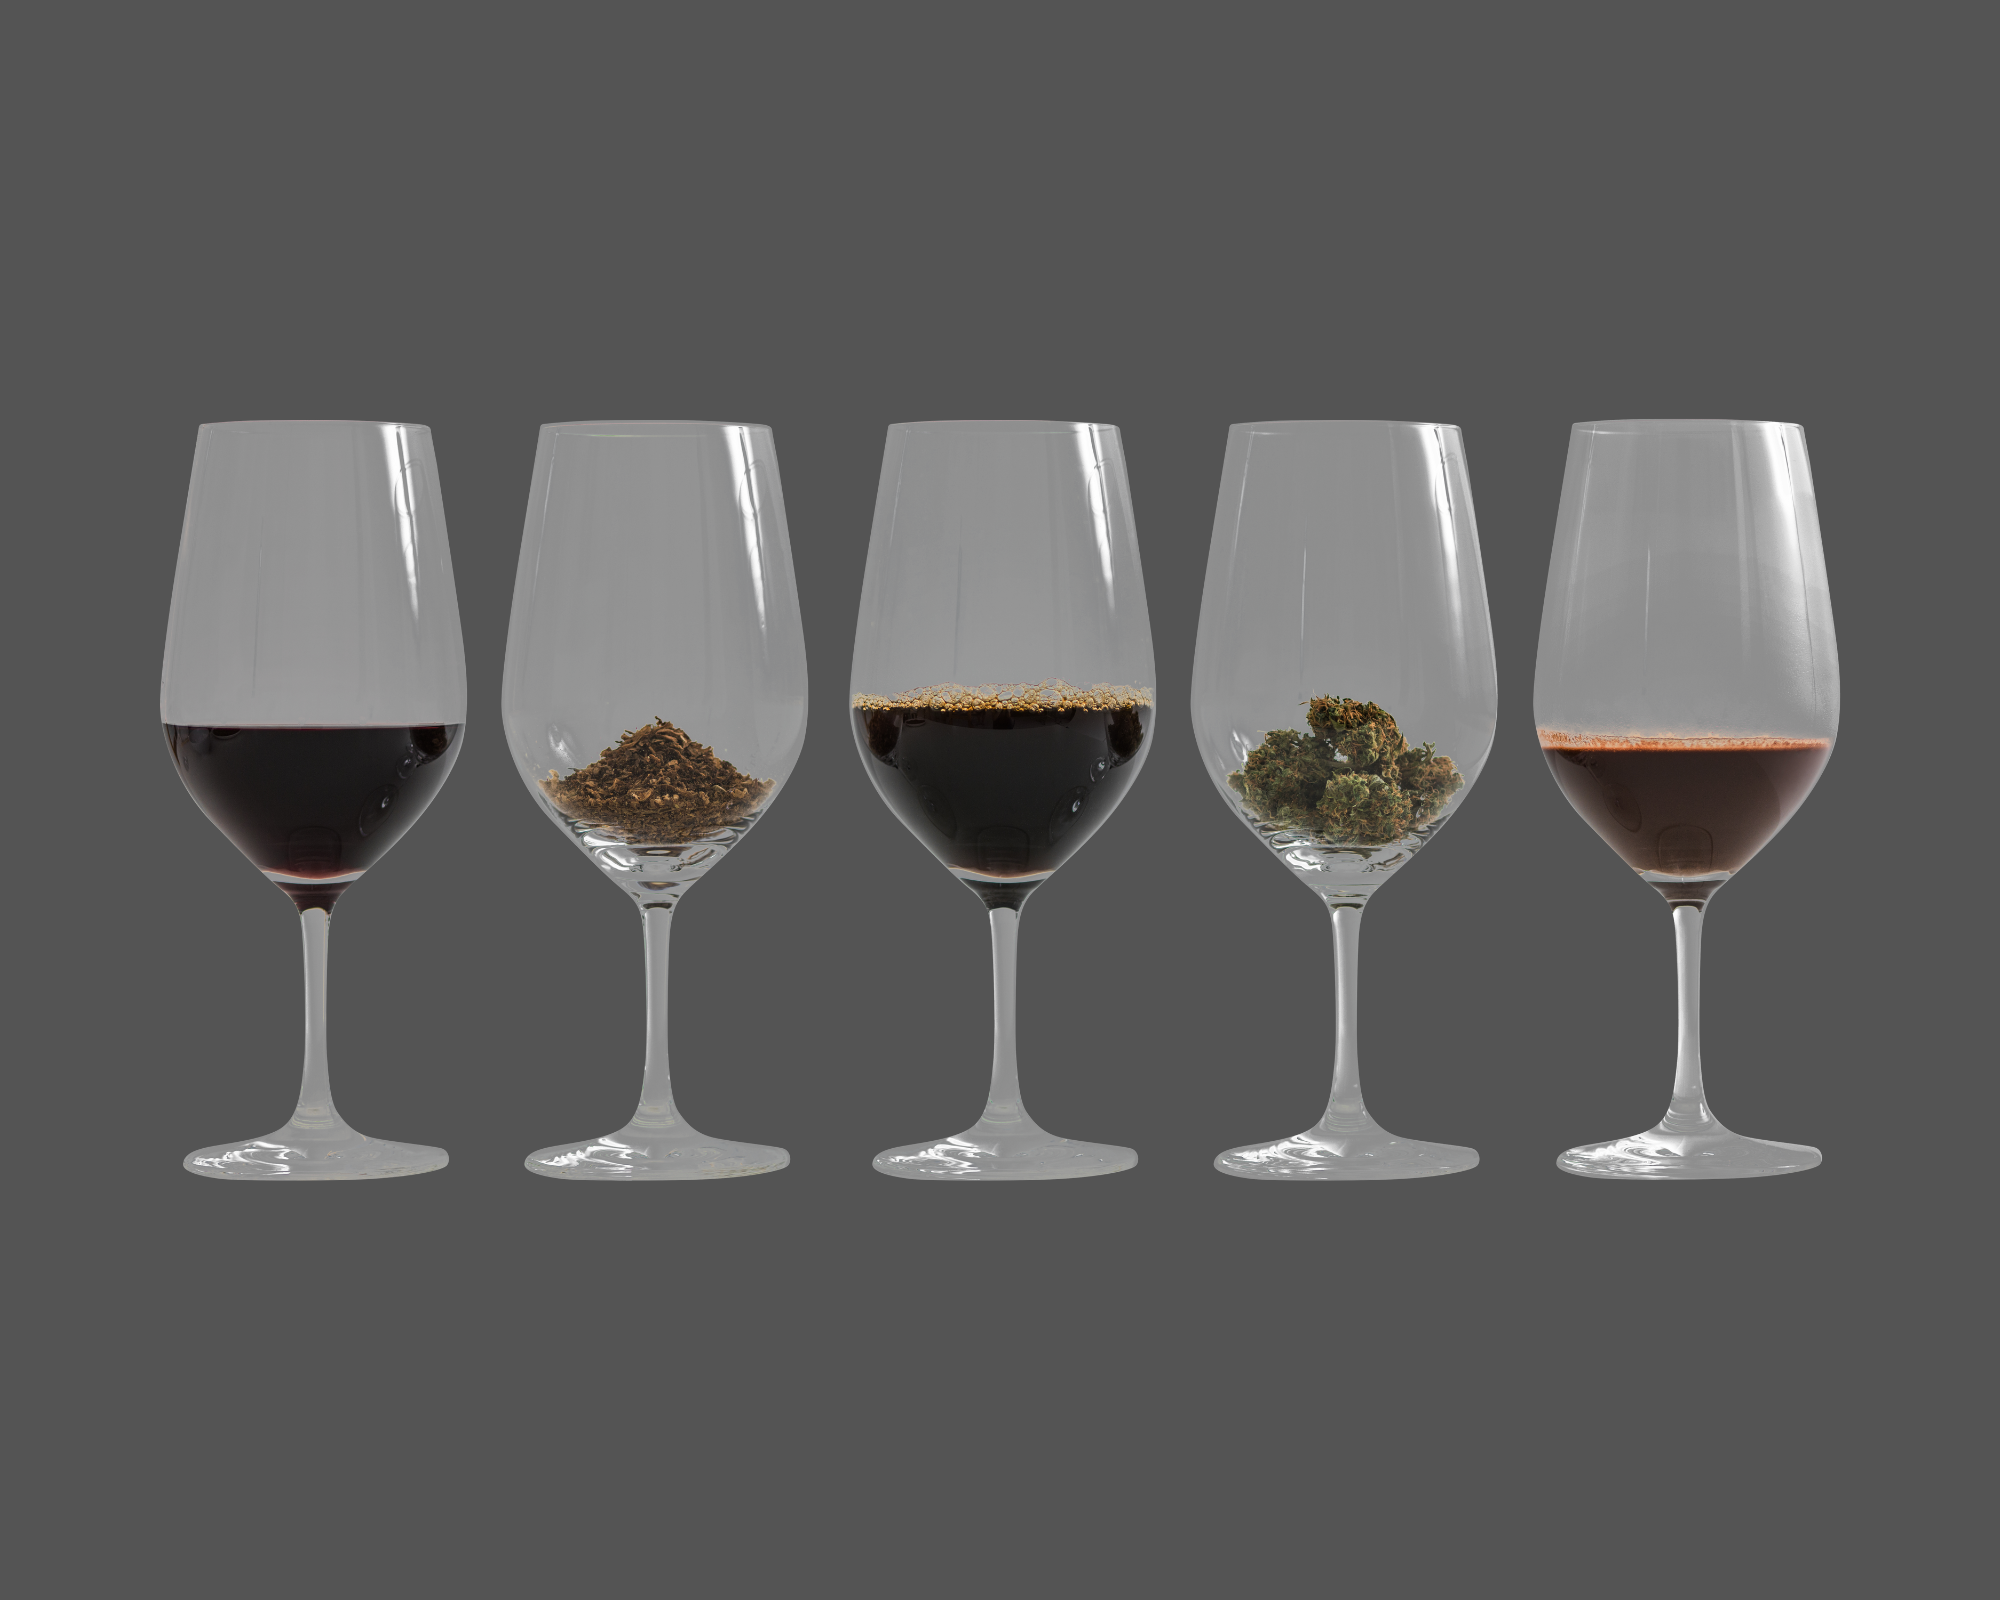 You are currently viewing Alcohol Vs. Cannabis